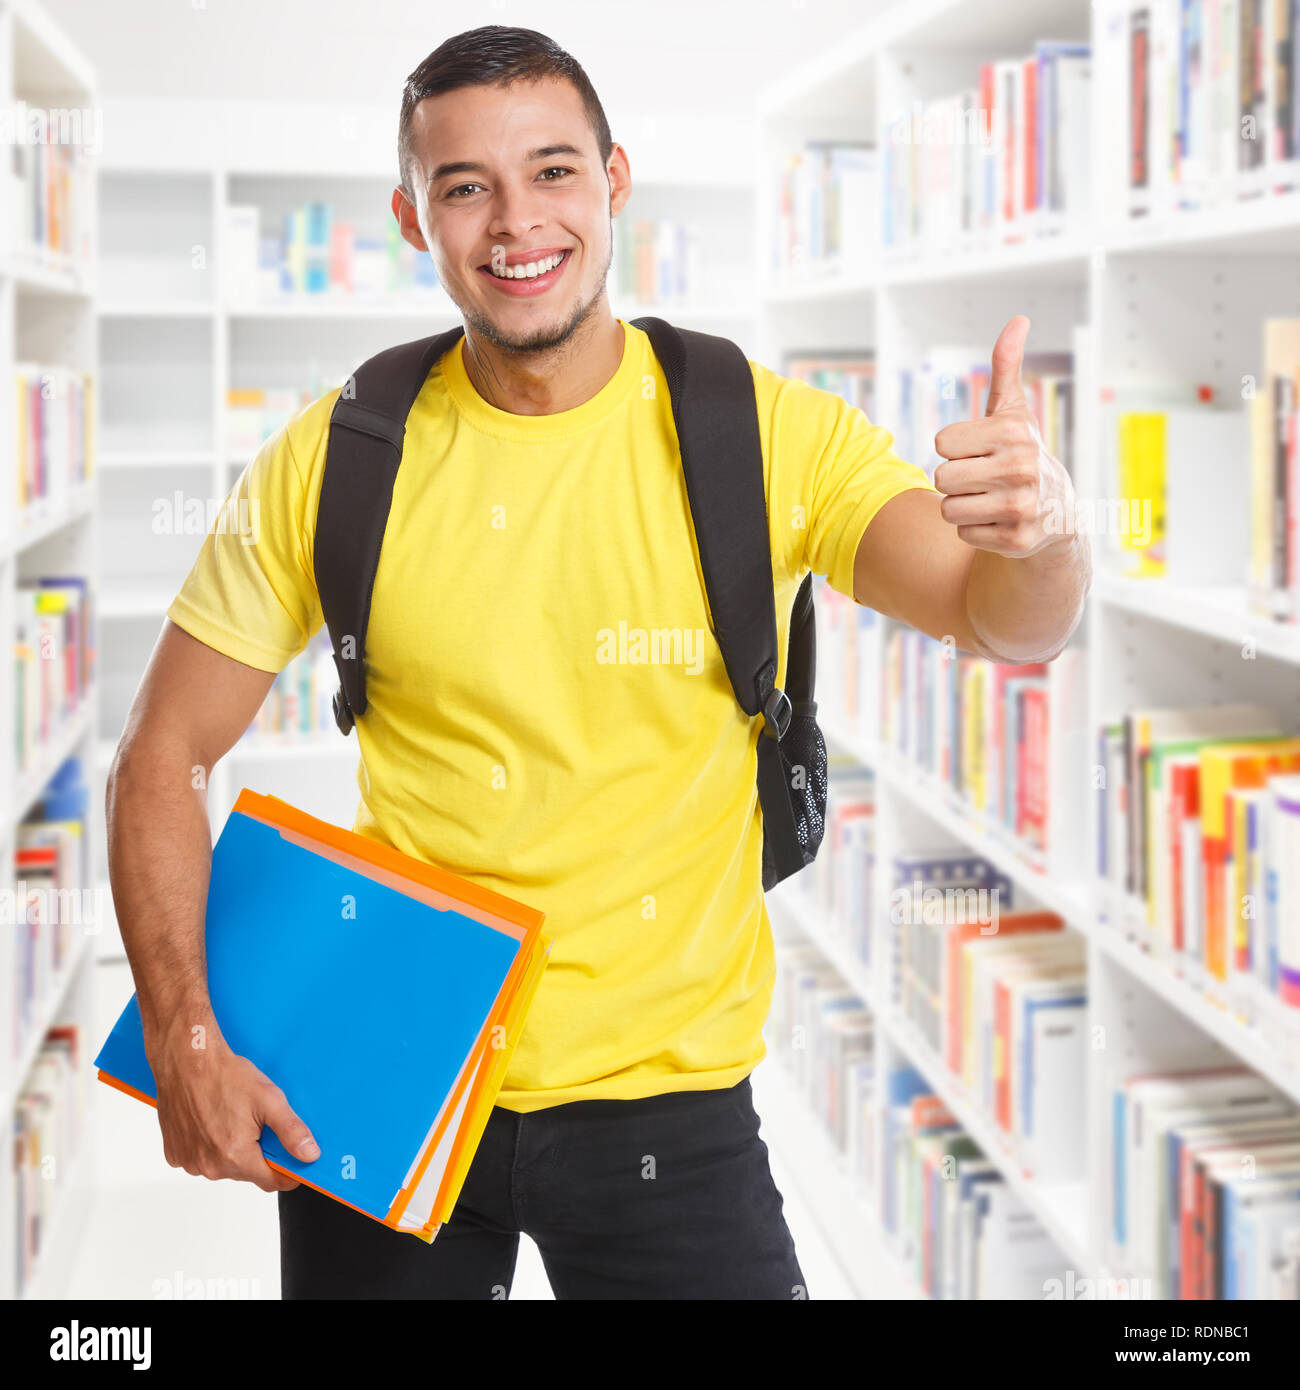 Student young man success successful library square learning thumbs up smiling people learn - Stock Image